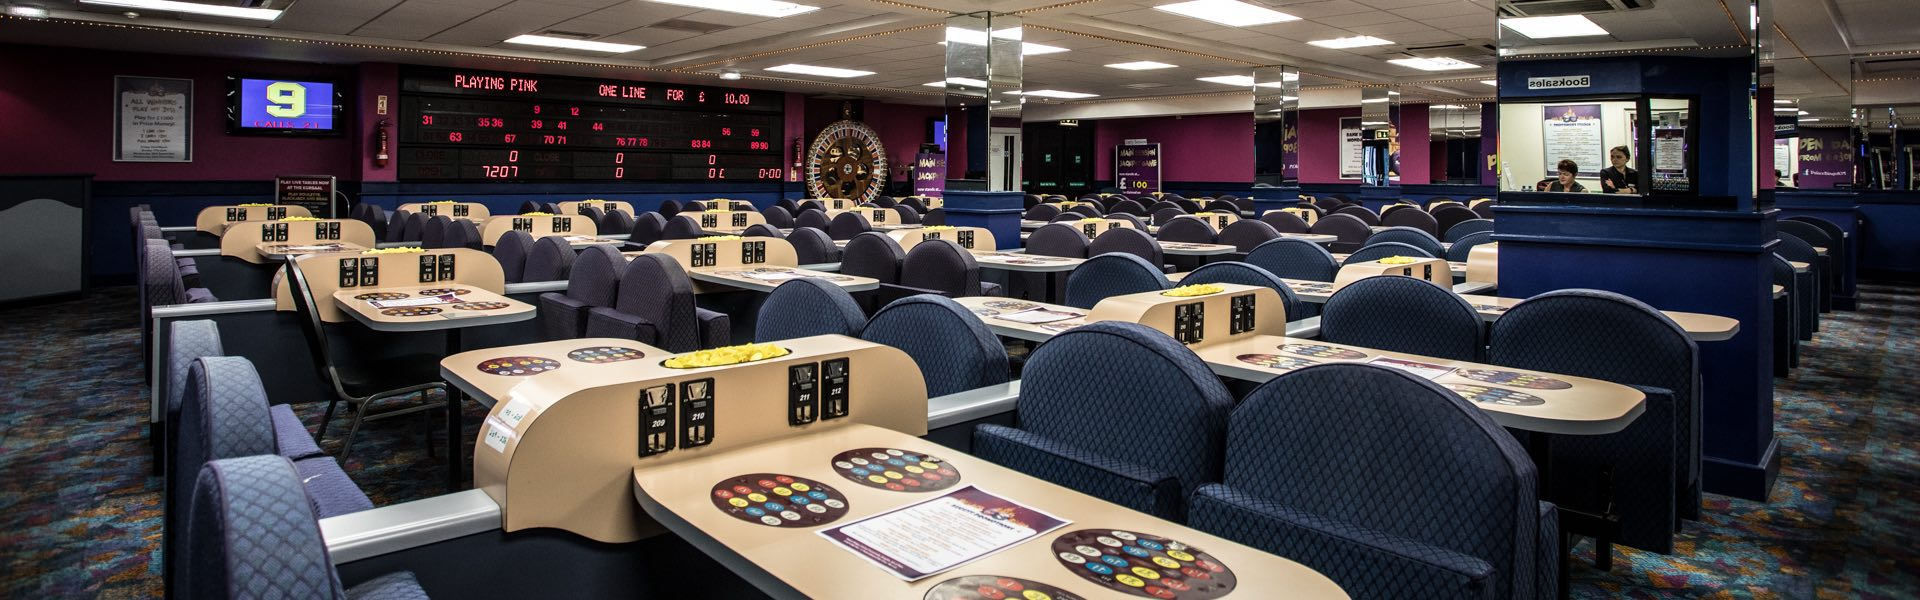 Isle of Man Bingo Hall